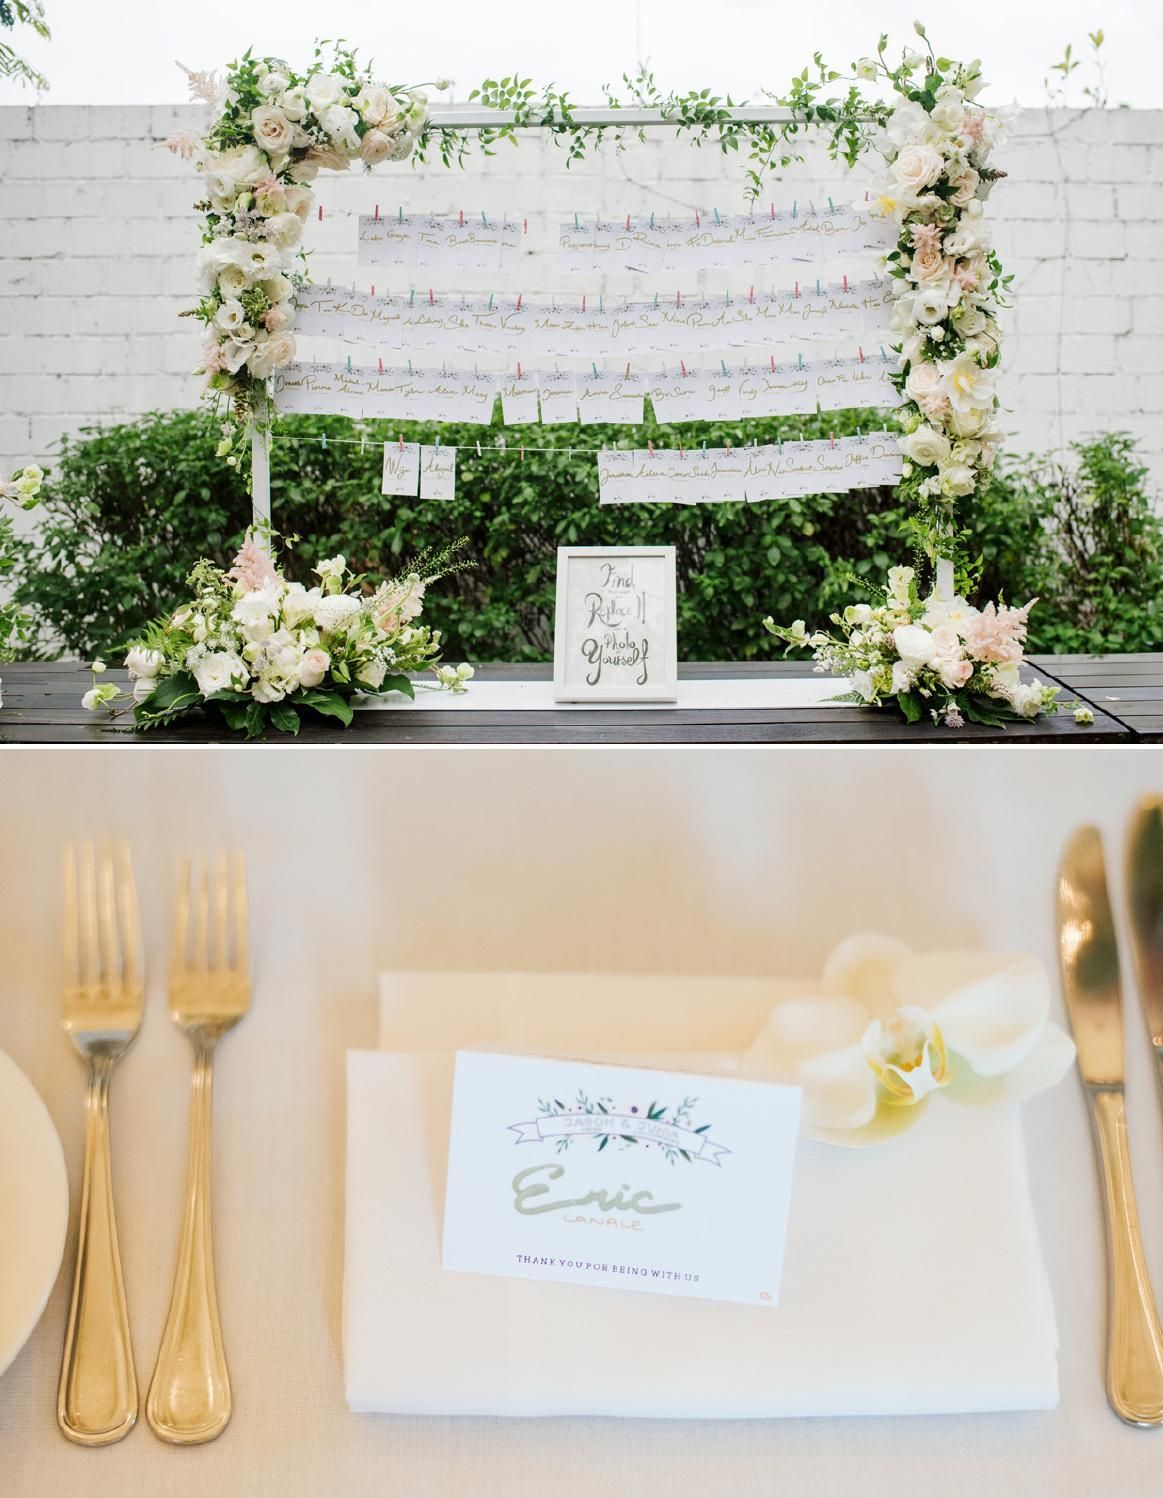 The Wedding Notebook July 2015 | Wedding notebook, Seating cards and ...